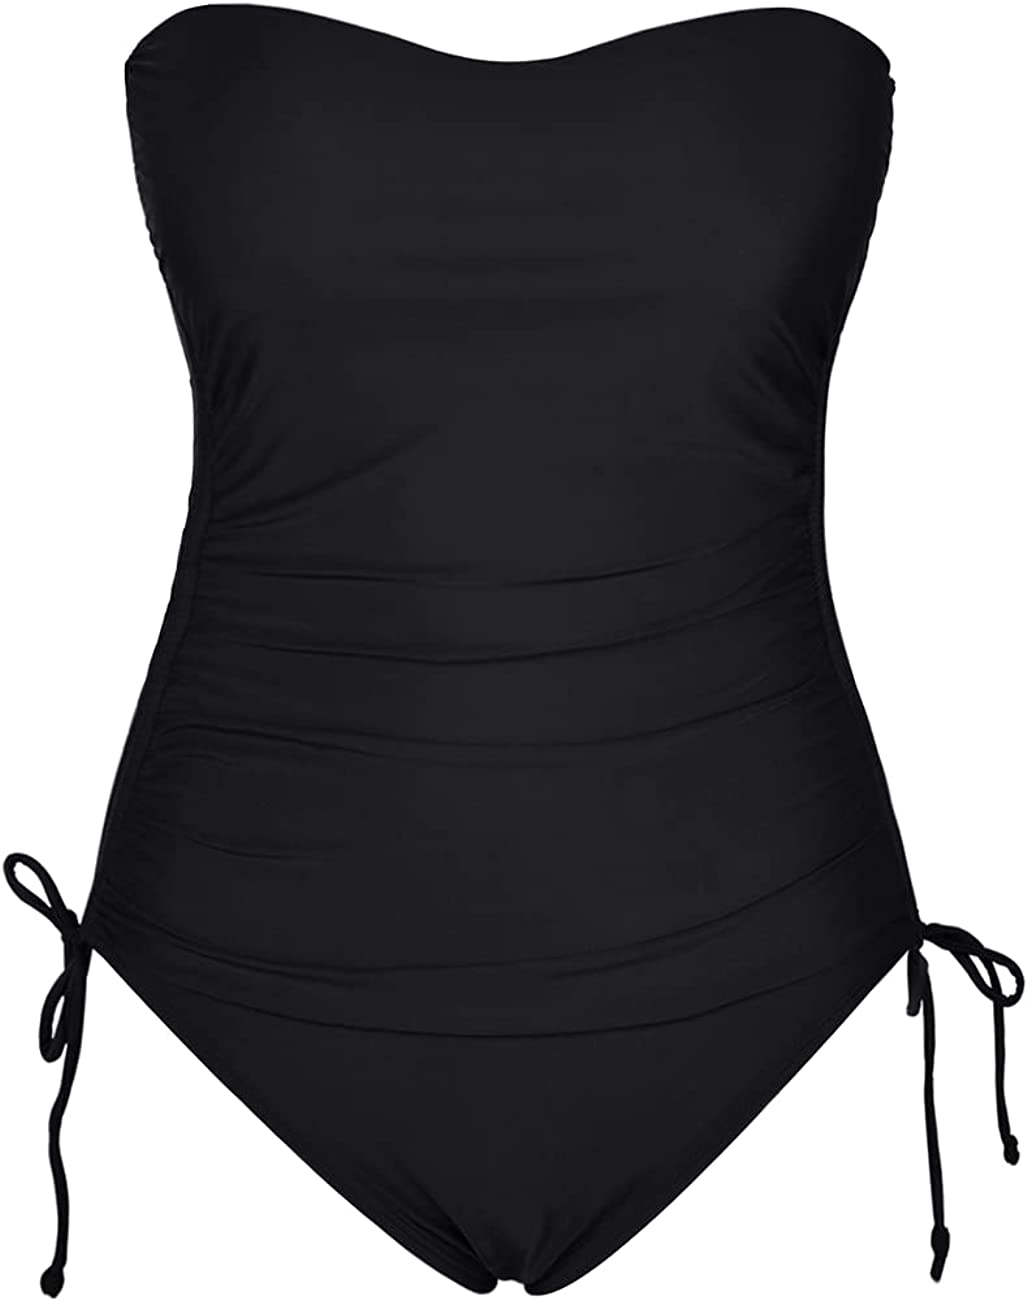 Firpearl Women's Bandeau One Piece Swimsuits Slimming Tummy Control Swimwear Side Drawstring Ruched Bathing Suits